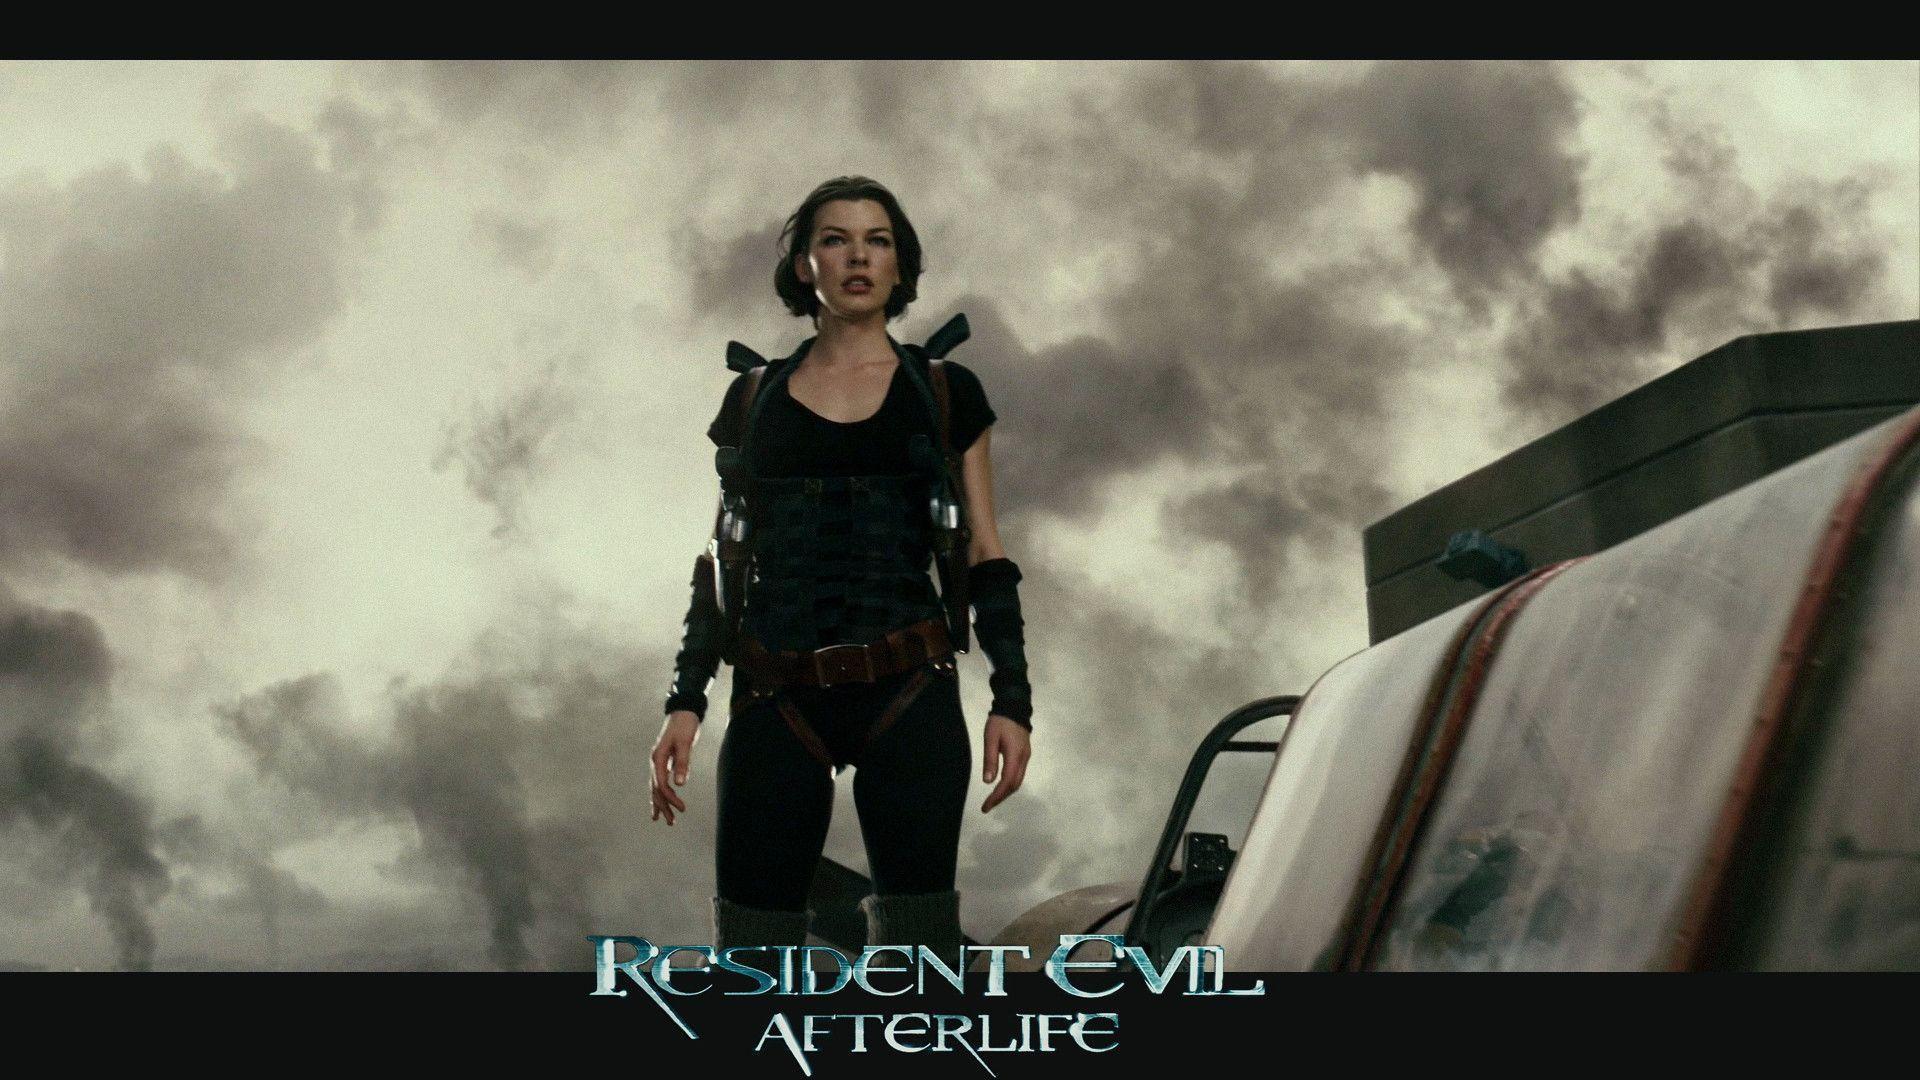 Resident Evil Movie Wallpapers - Wallpaper Cave